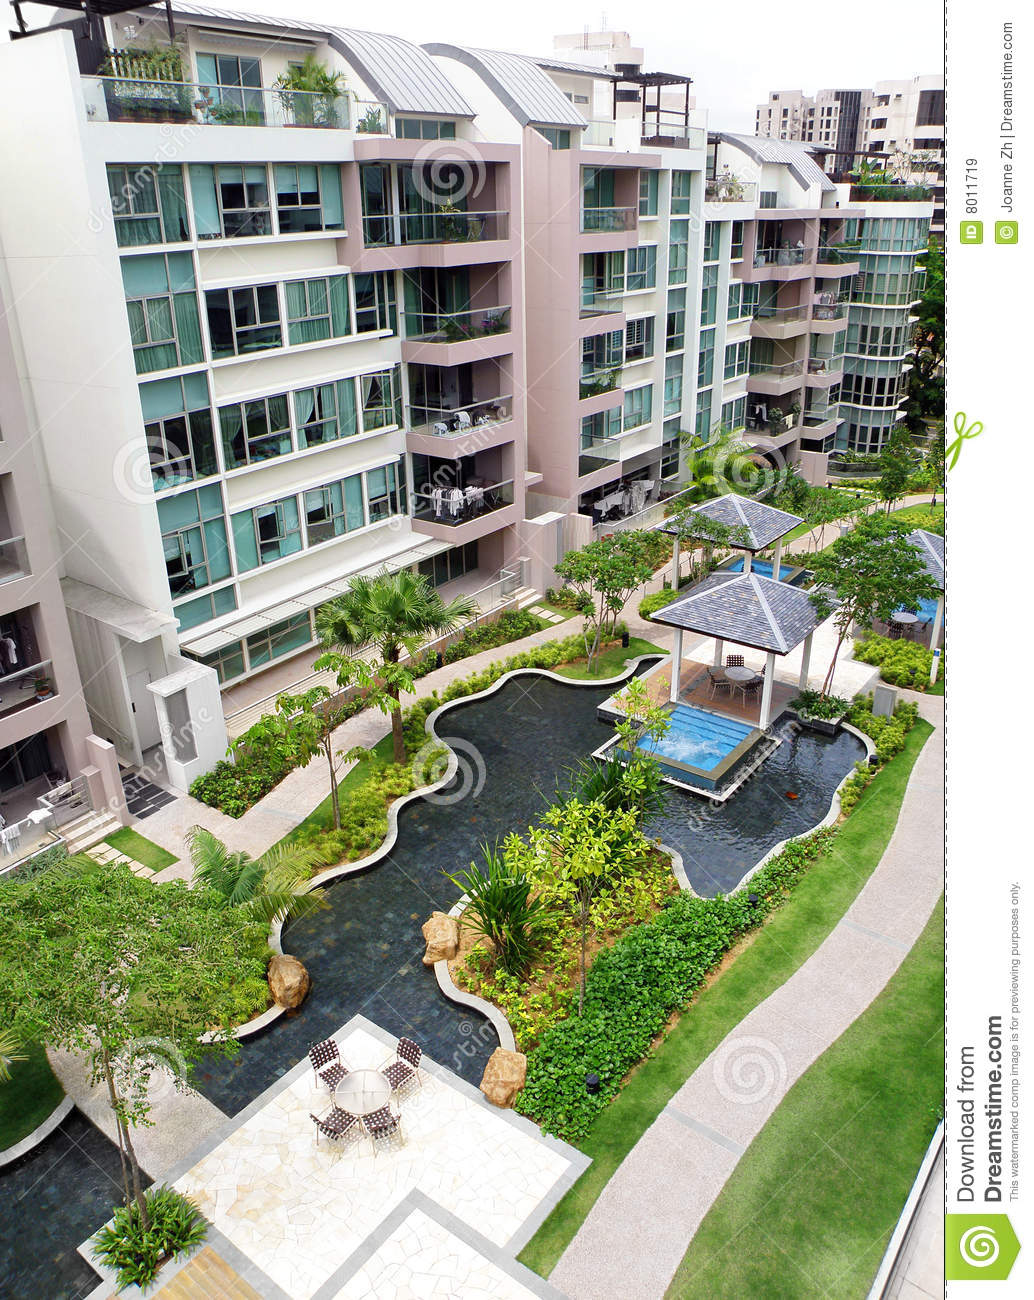 Modern condominium exterior landscaping royalty free stock images image 8011719